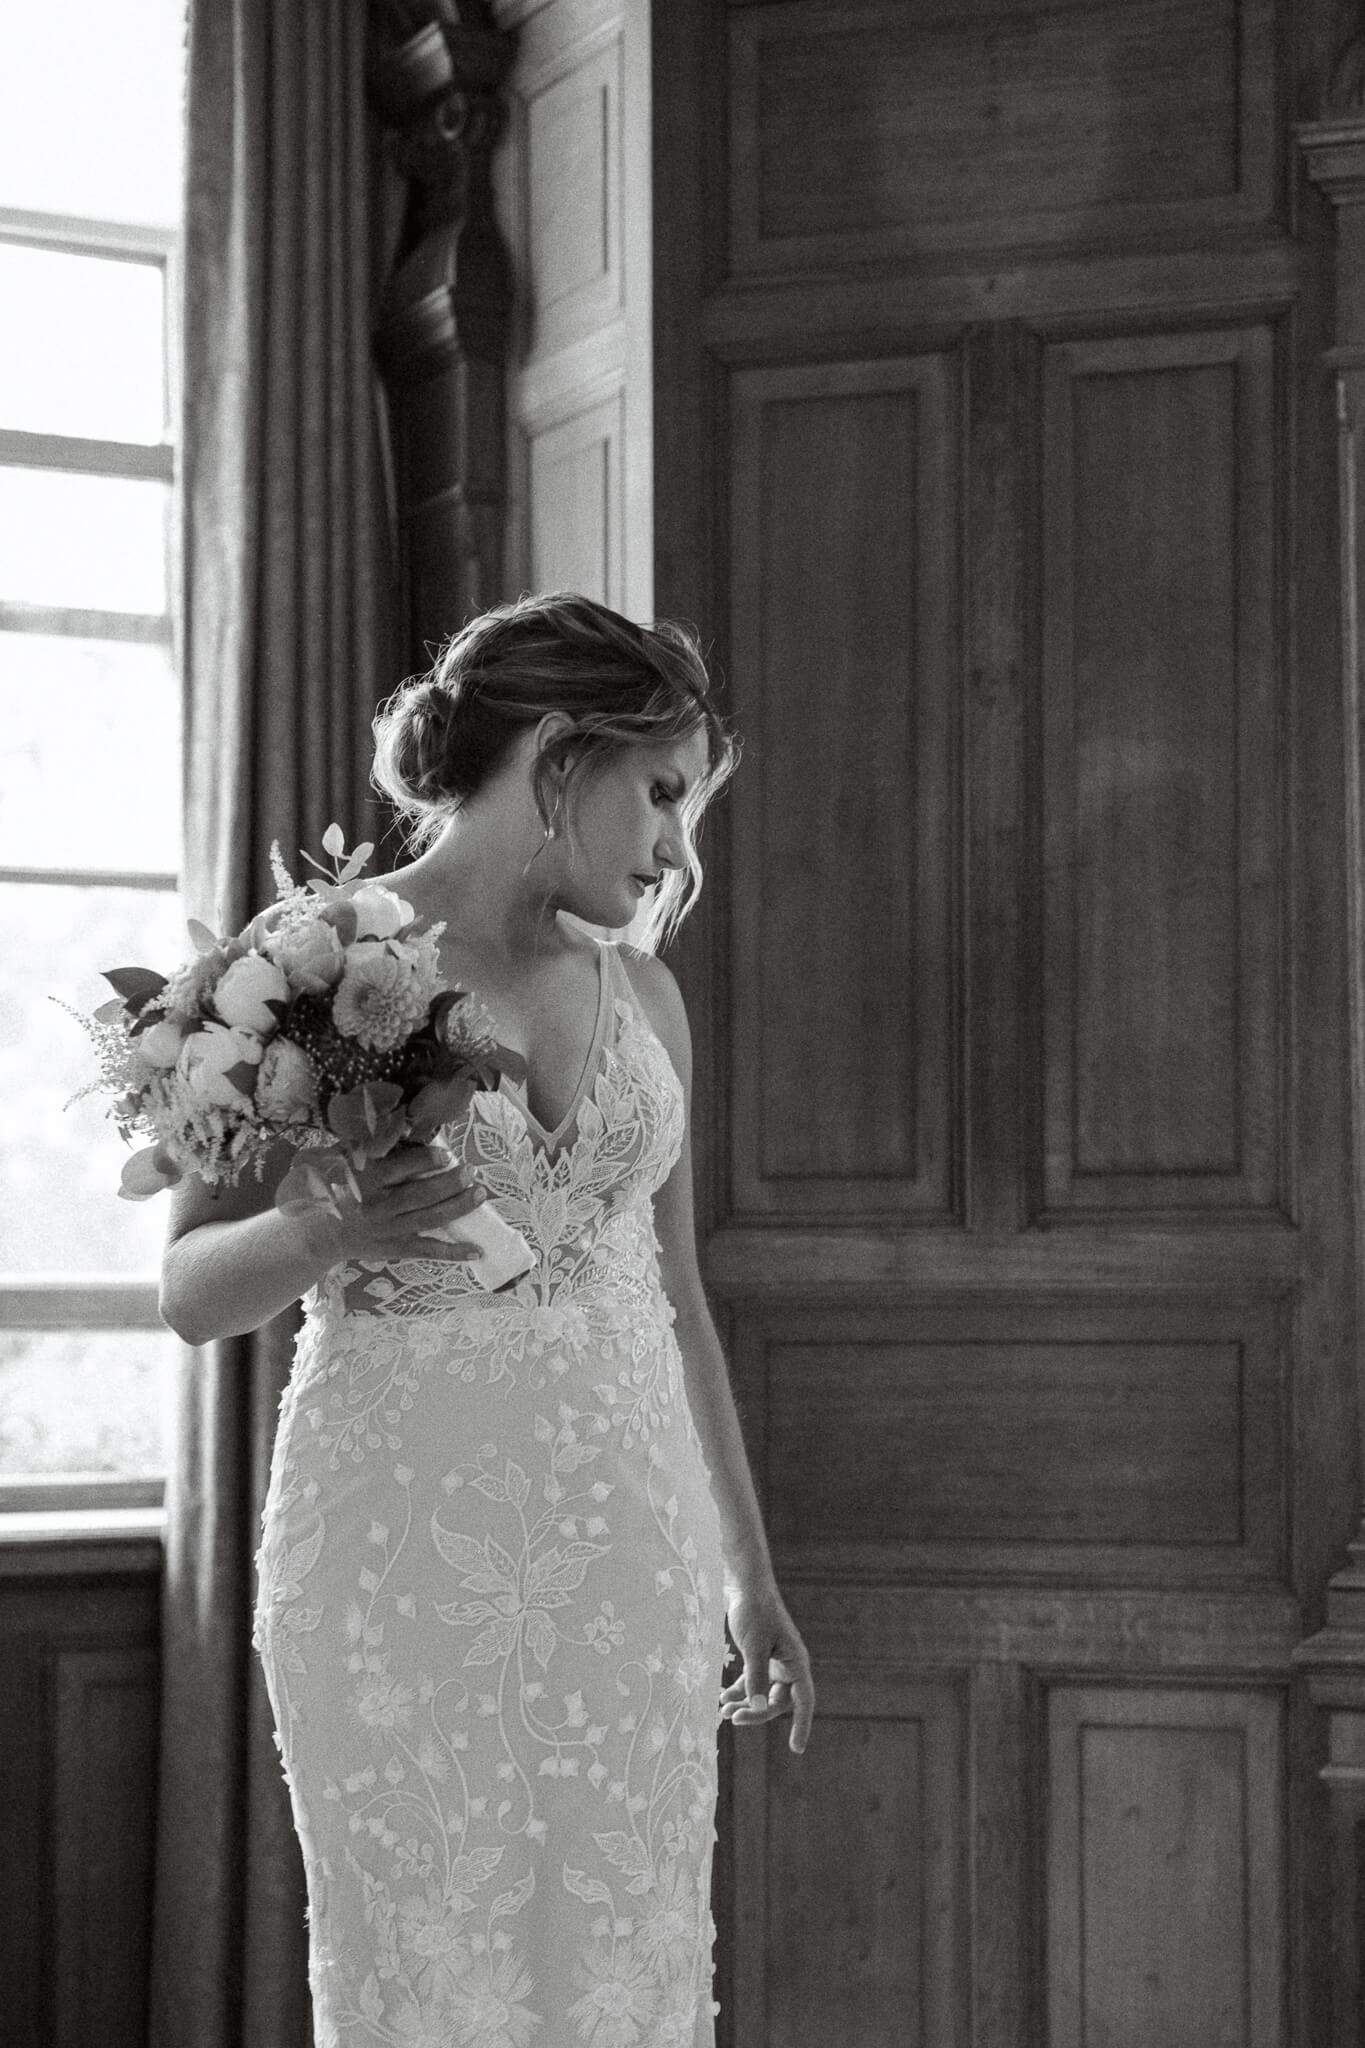 Bridal Suite at Cliveden Hotel with Bride Getting ready | West London Wedding Photography